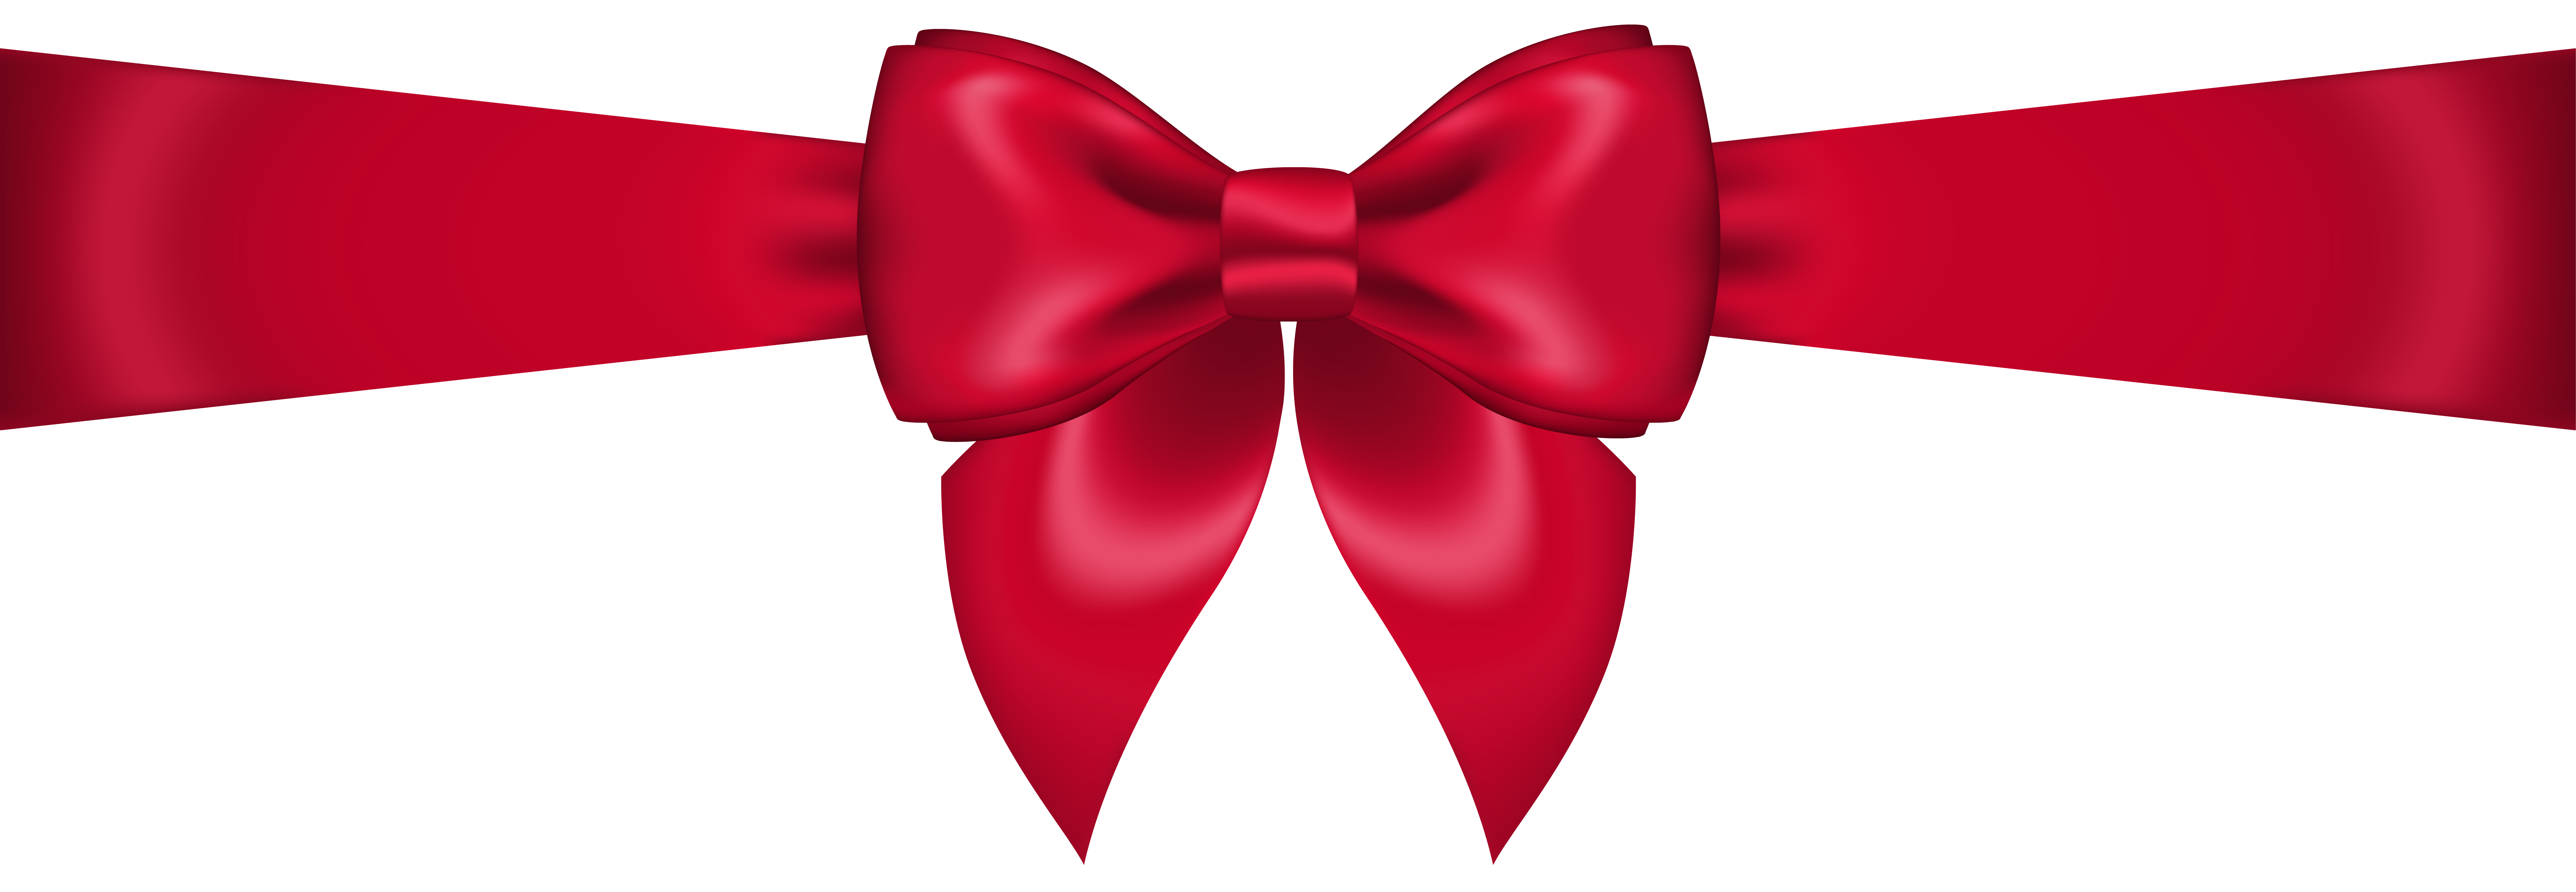 Red holiday bow png. Transparent clip art clippart